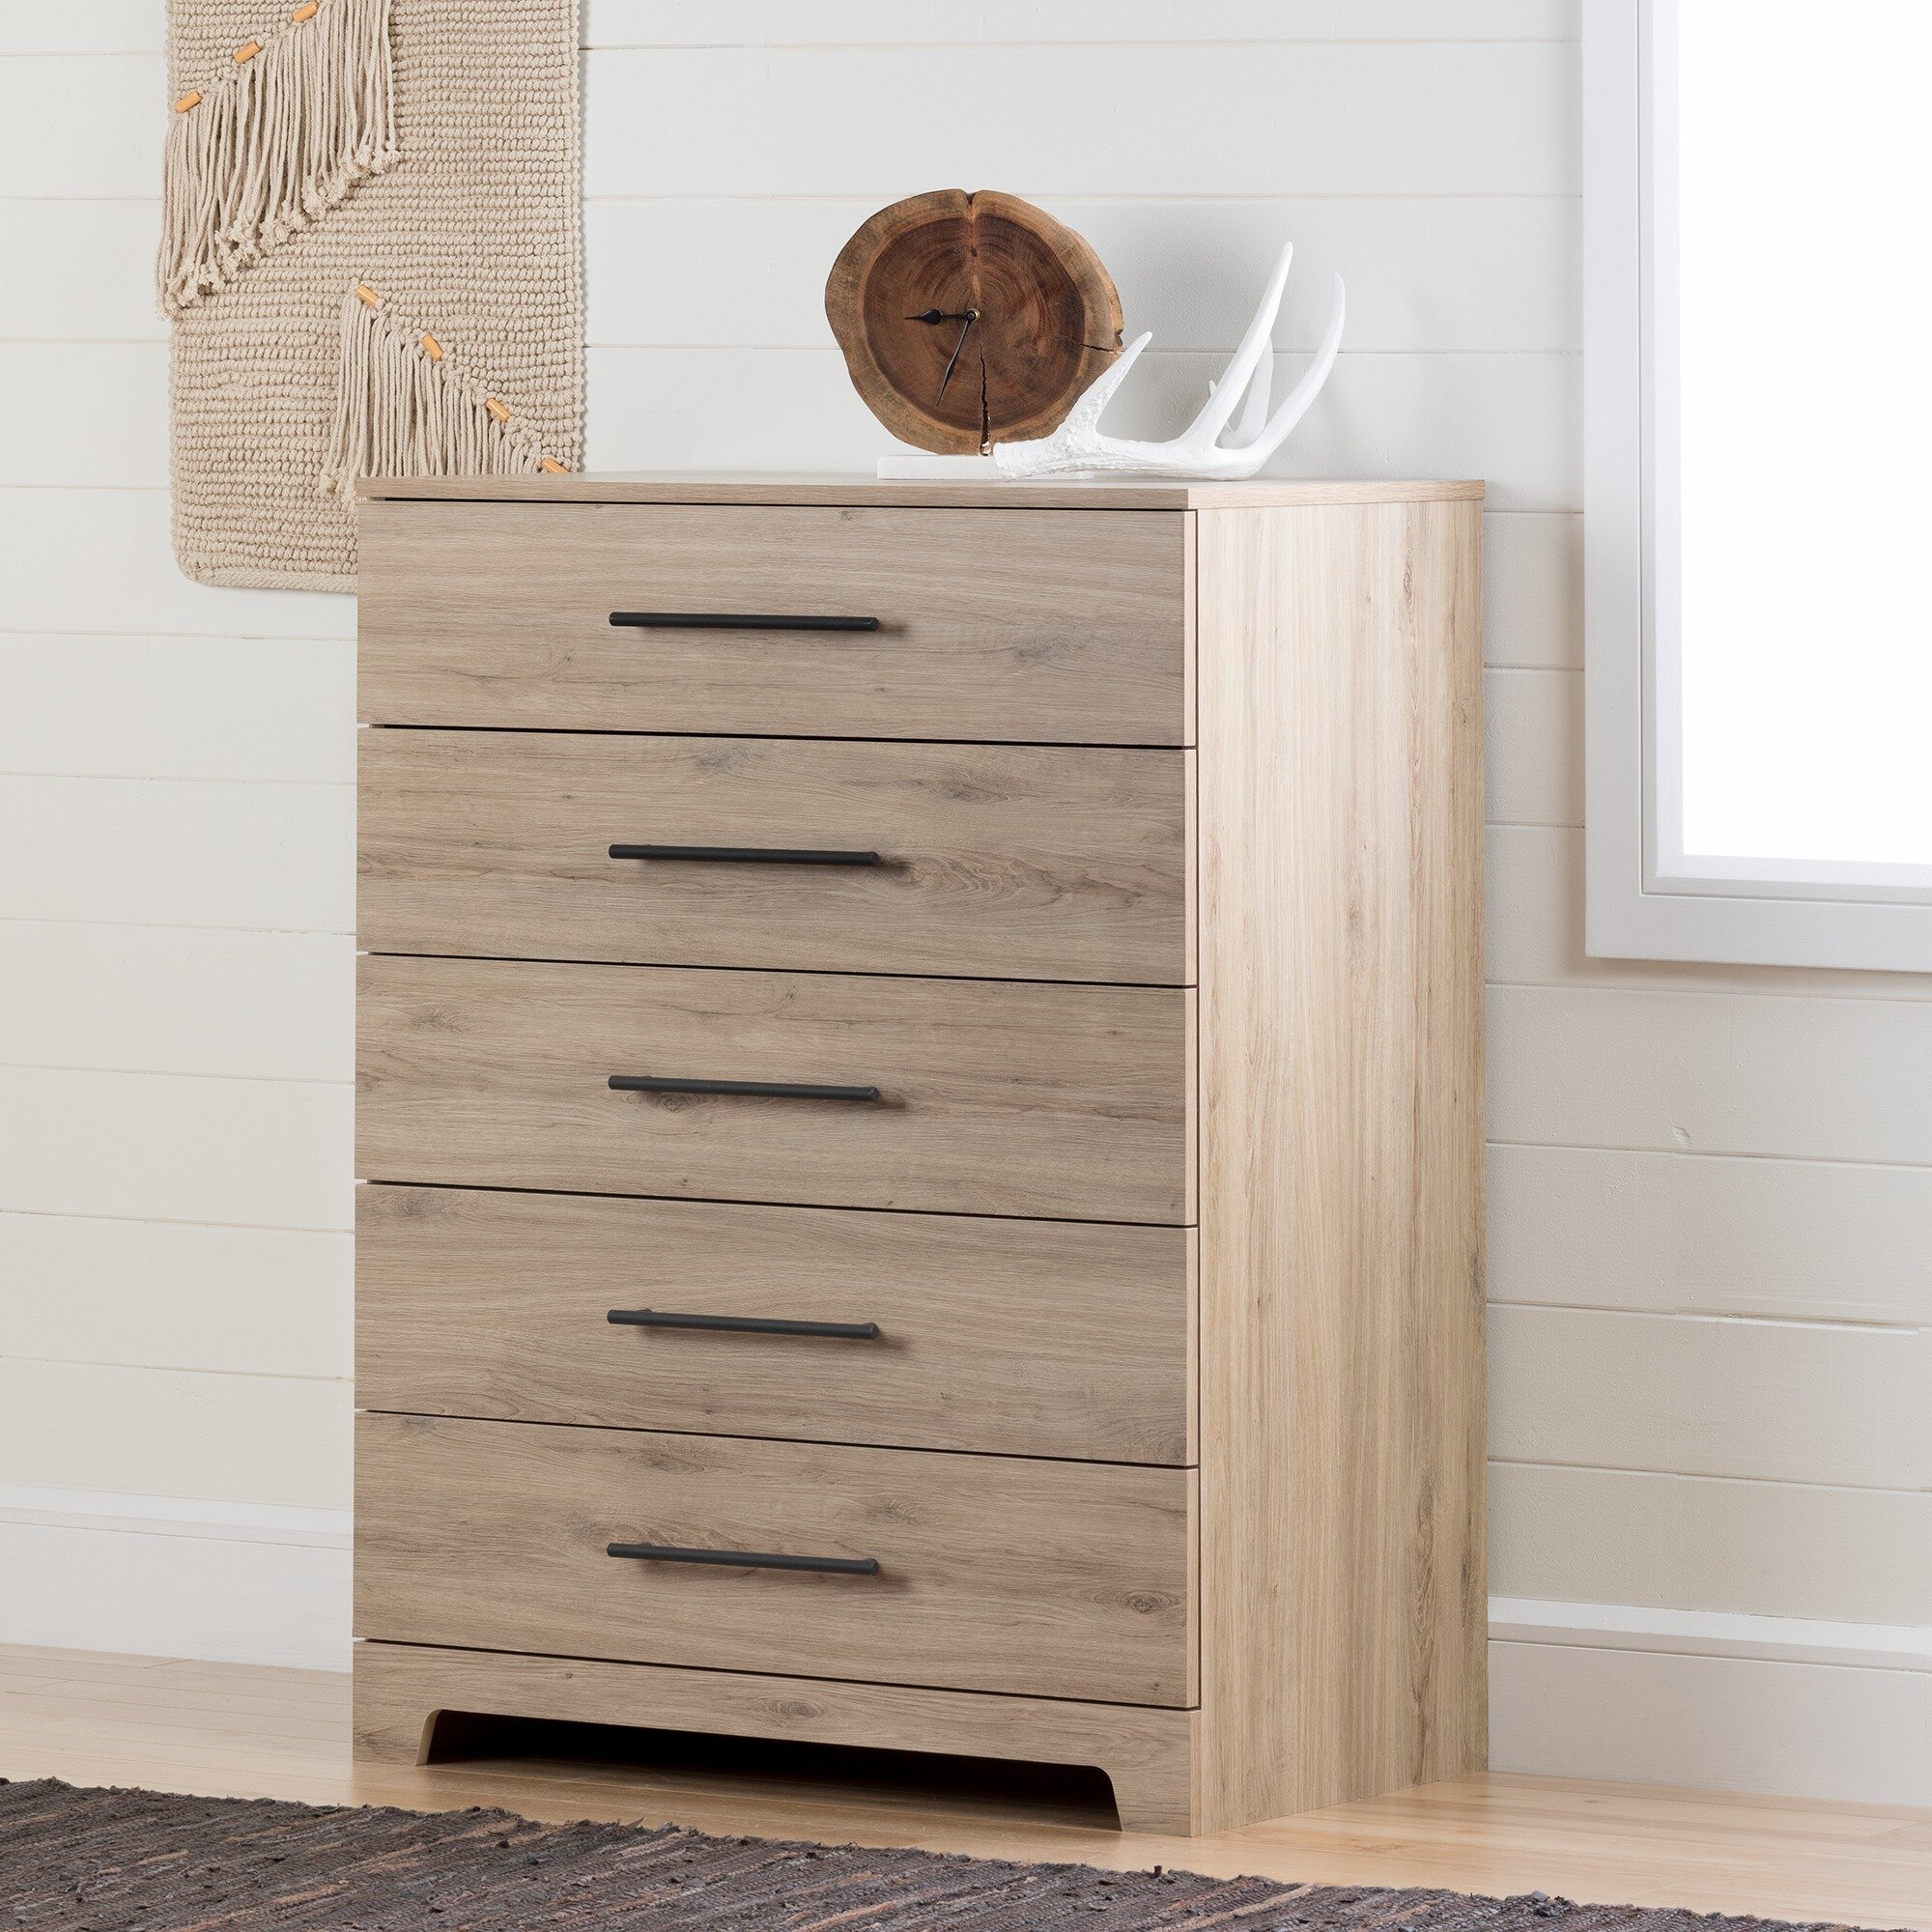 furniture asp moderna of chest drawers cupboard sonoma drawer p